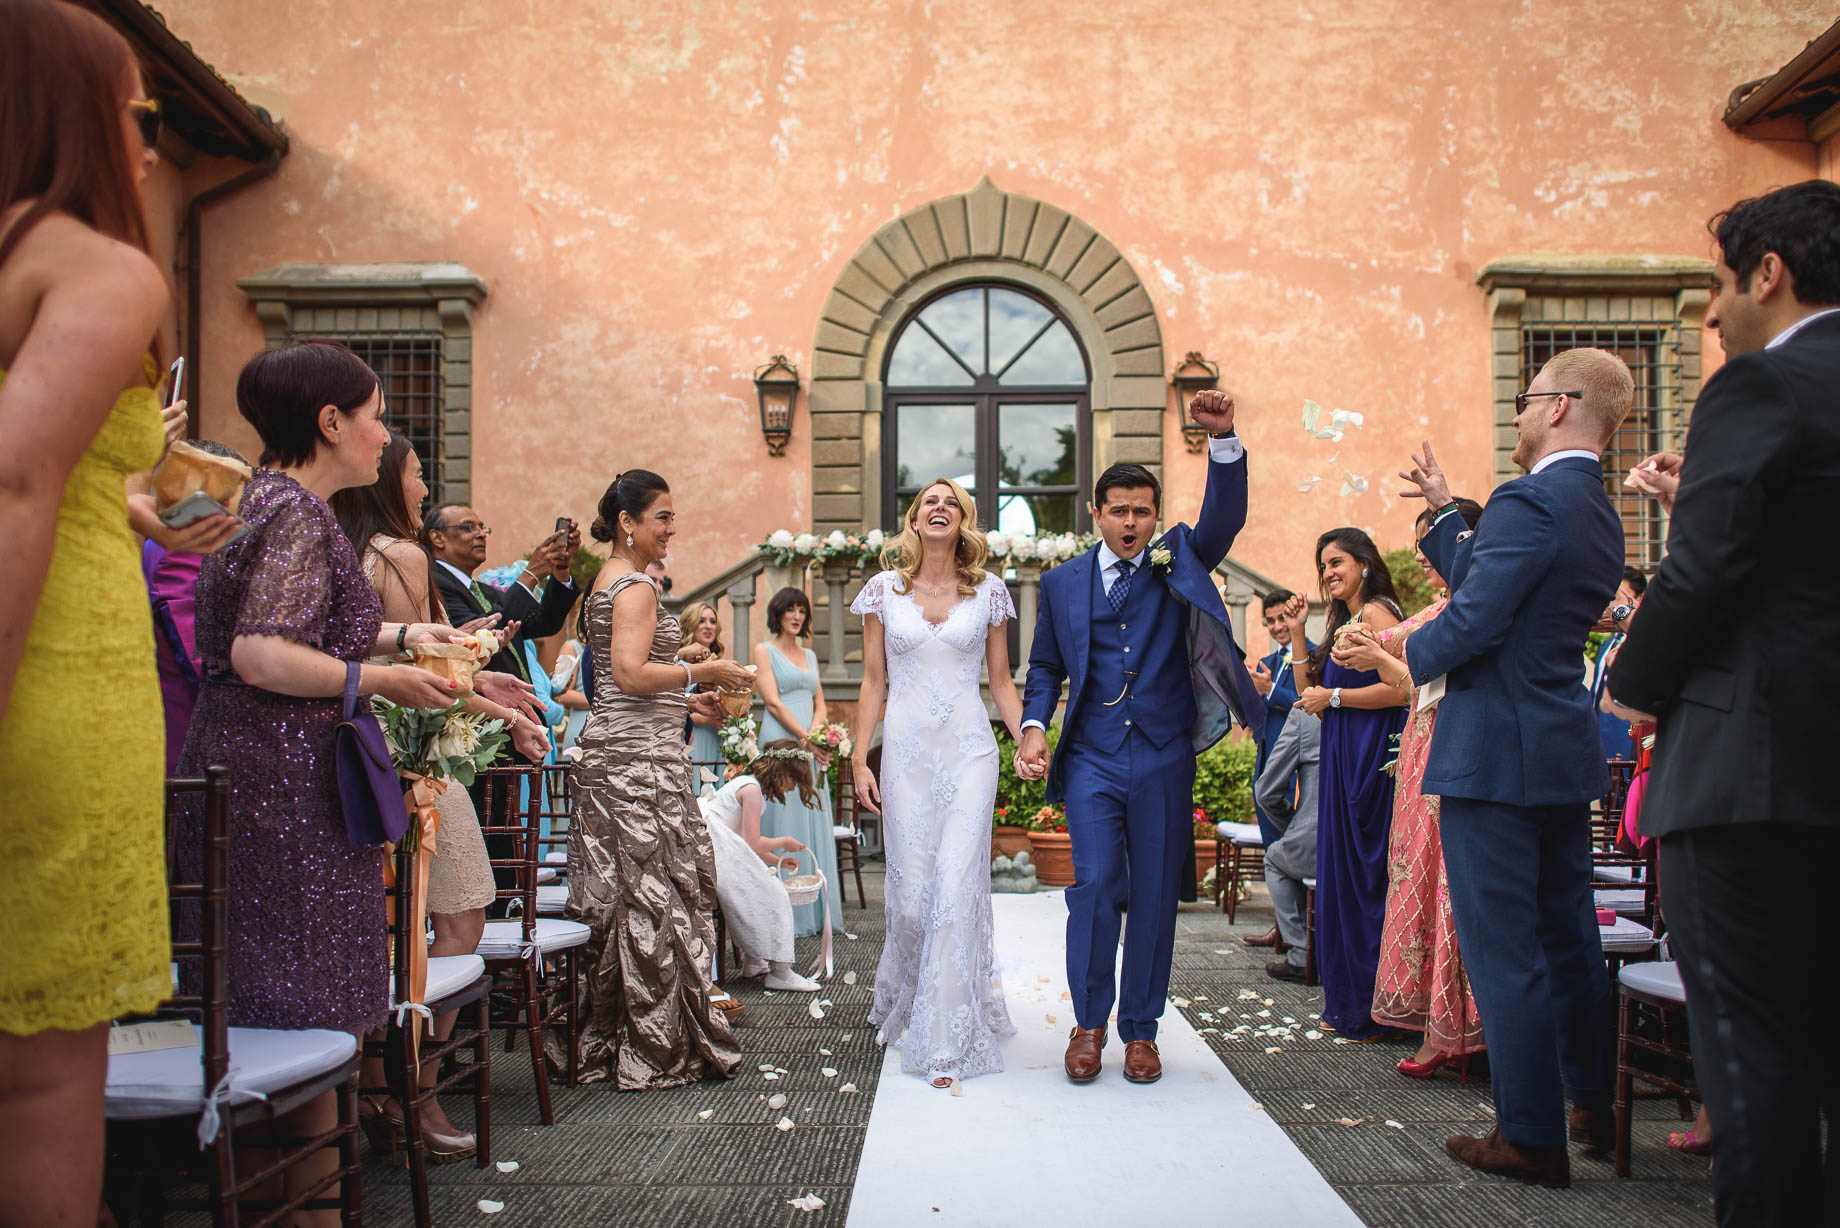 Tuscany-wedding-photography-Roisin-and-Moubin-Guy-Collier-Photography-113-of-251.jpg